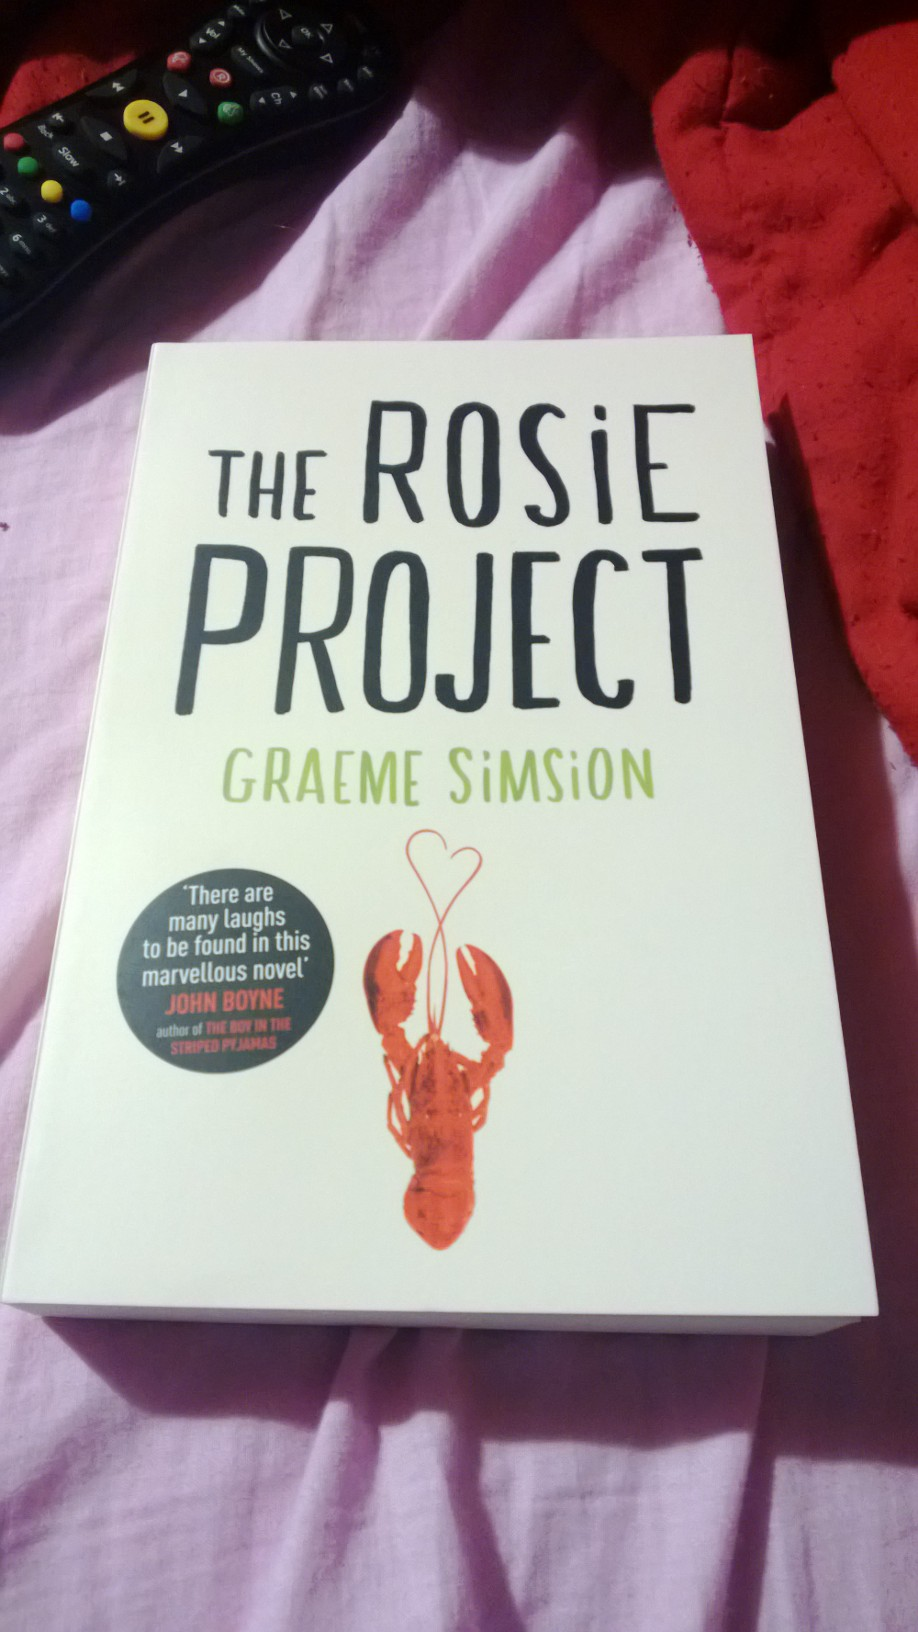 Graeme Simsion - The Rosie Project